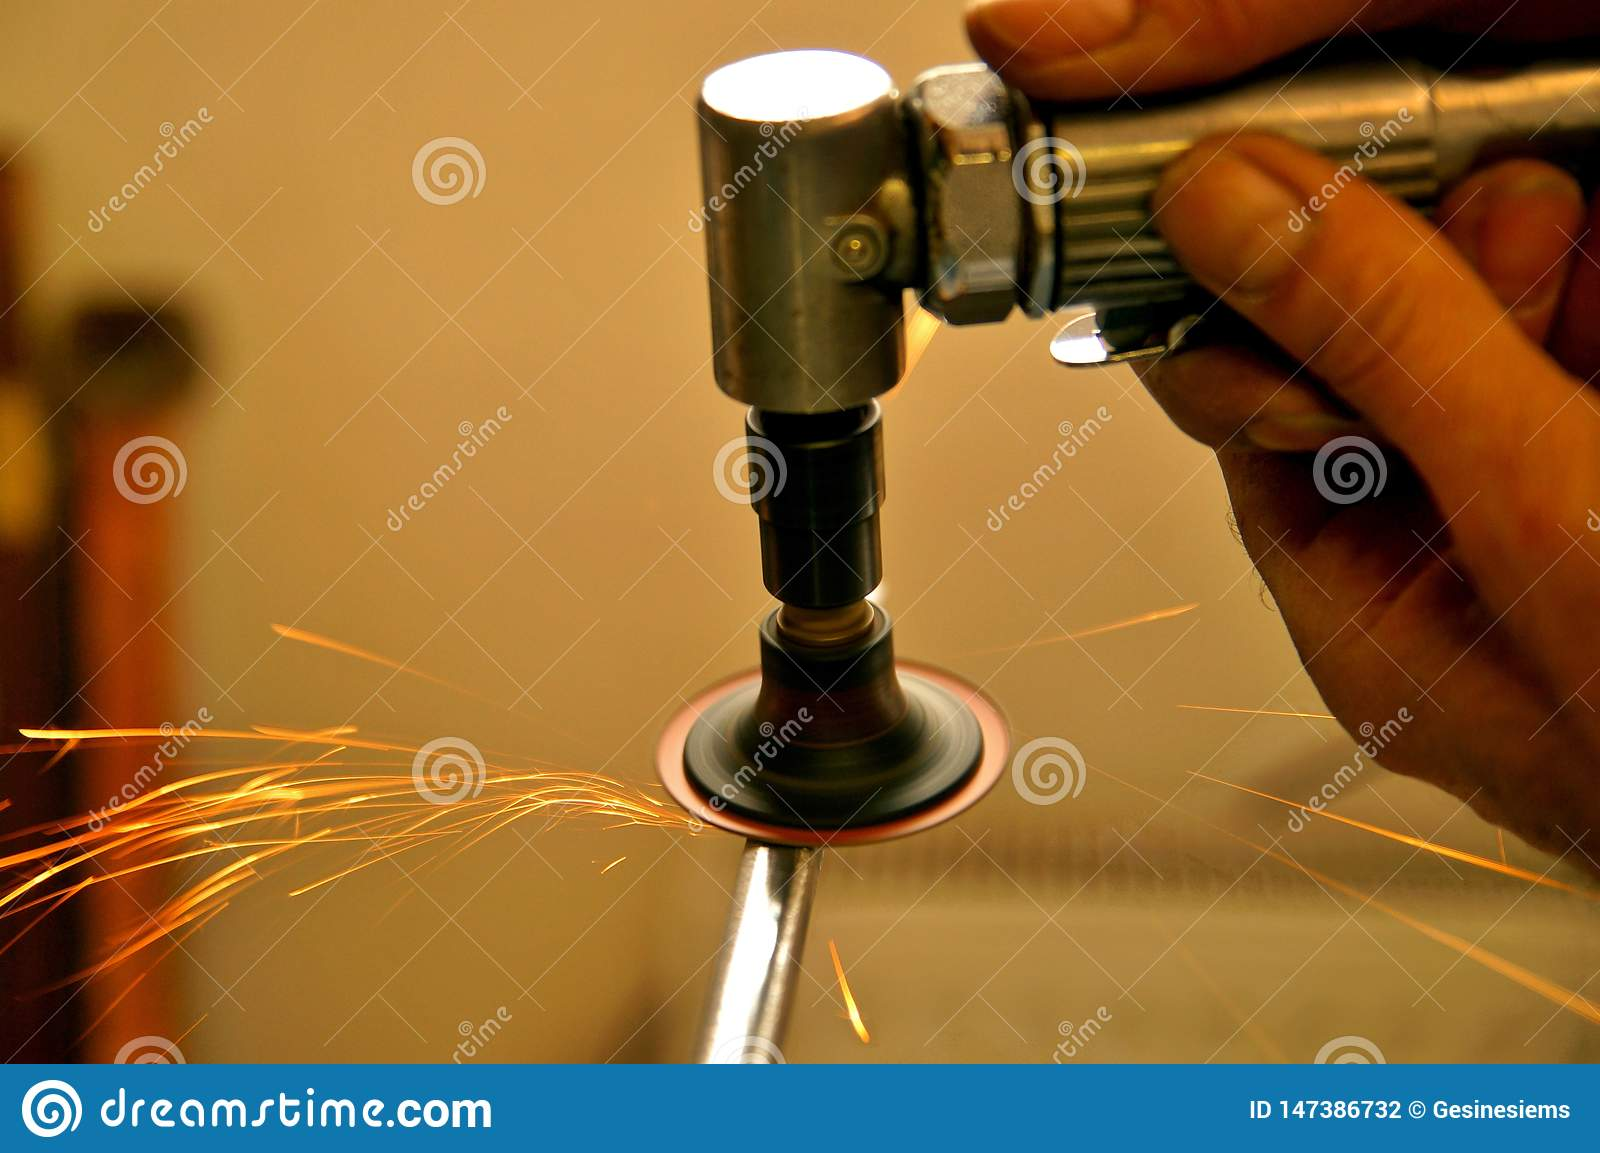 A man working with air pump grinder cleans metal parts blanks.